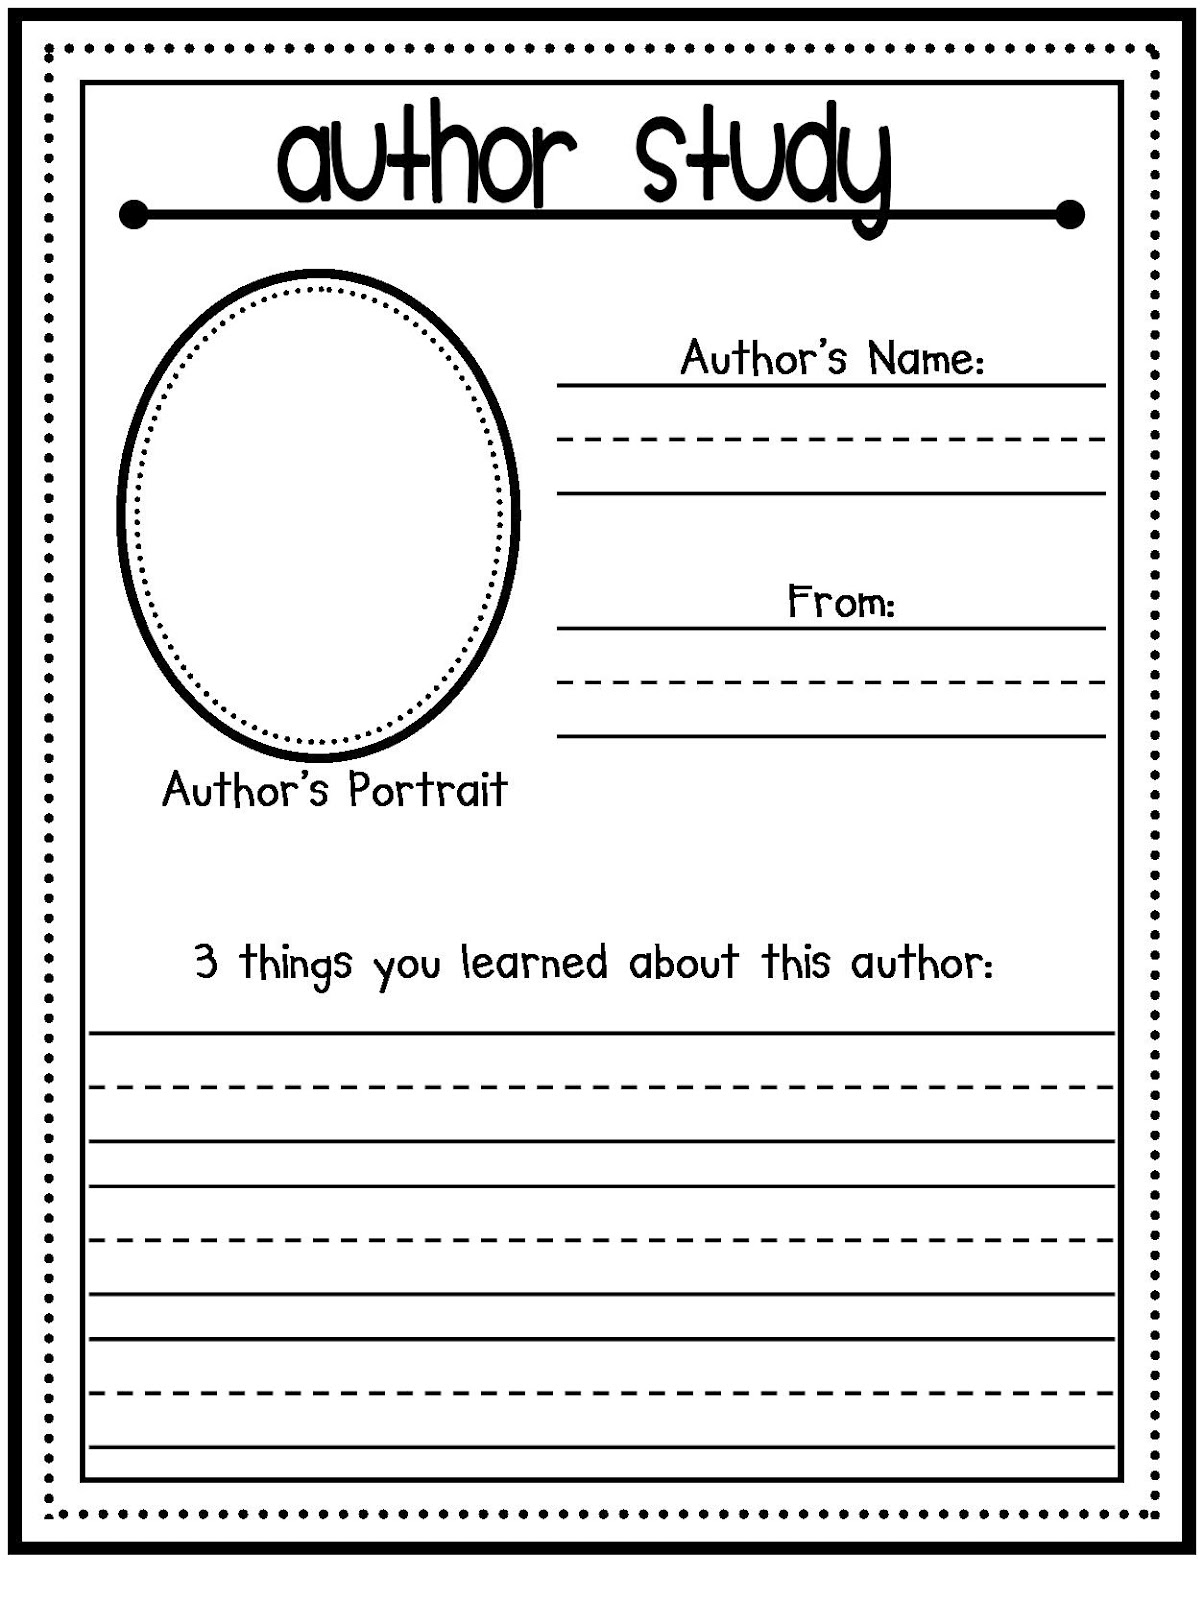 All About the Author Template - Google Docs